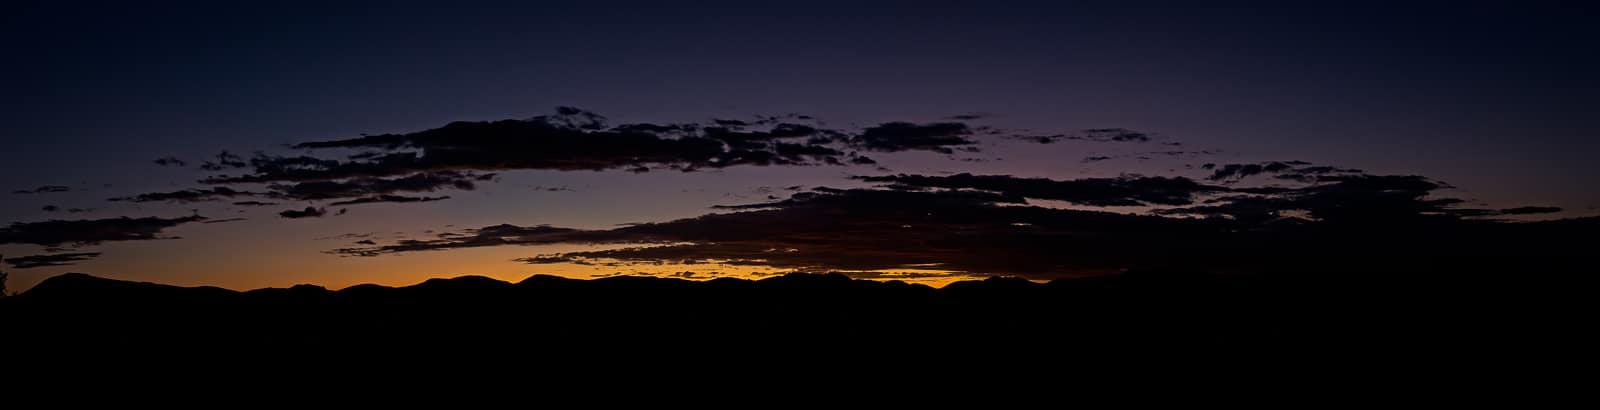 Sunsetting while I post process images.